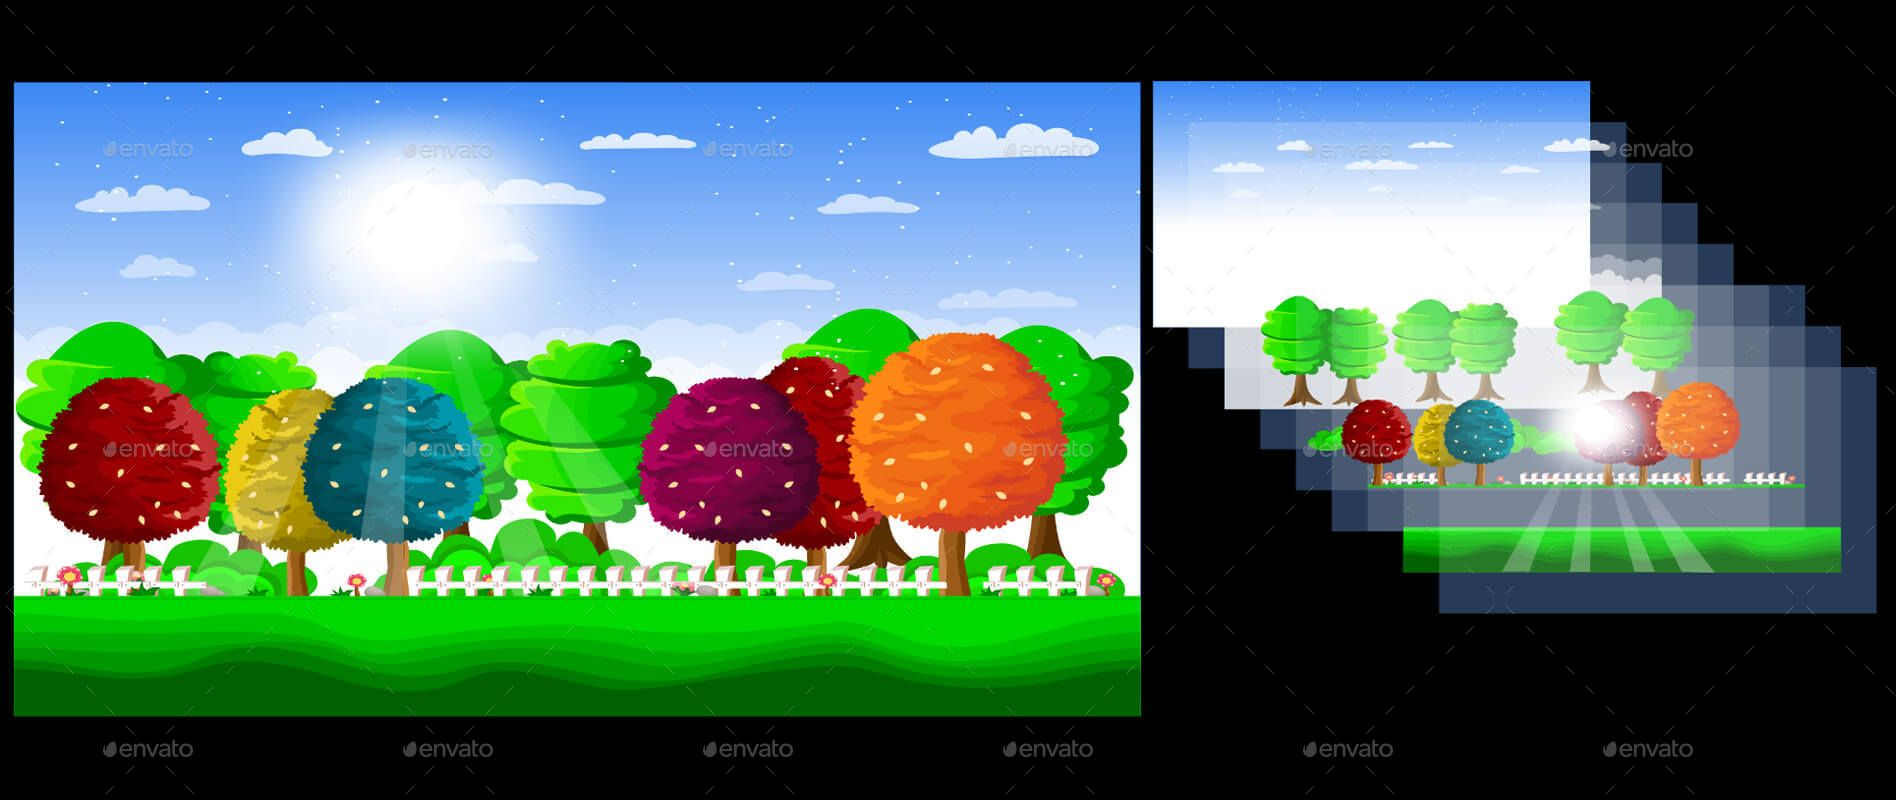 20 Vector Game Backgrounds Parallax Scrolling In 2020 Vector Game Game Background All Games